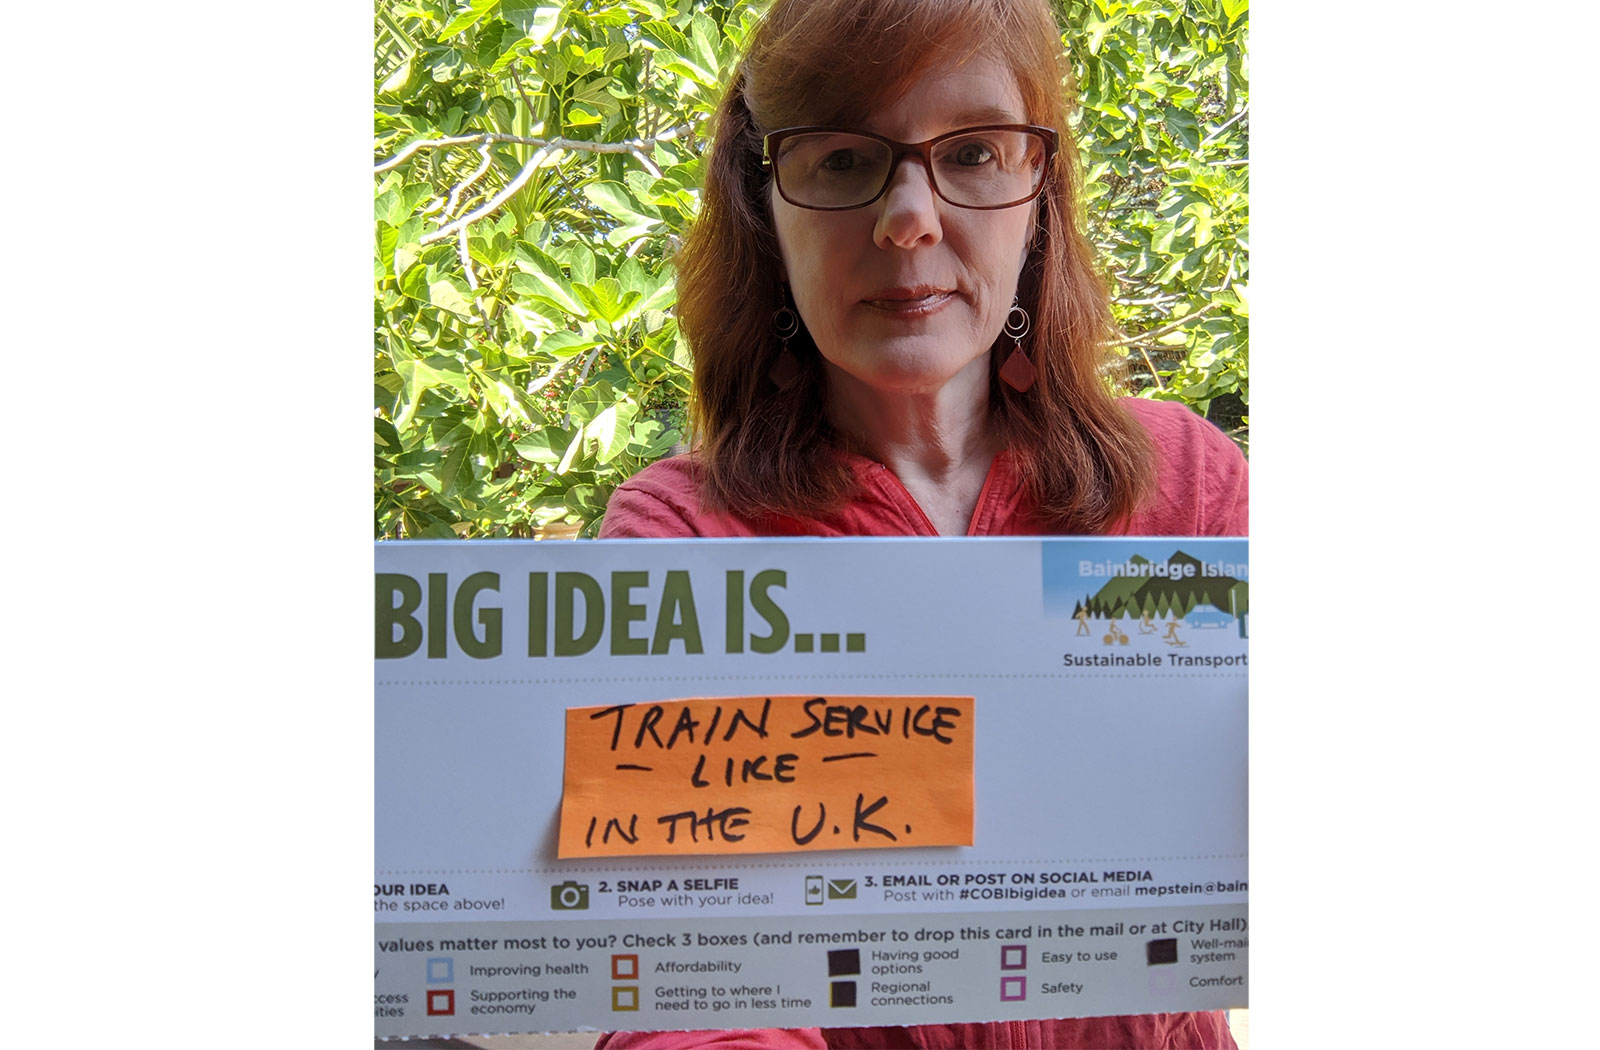 a postcard stating a community member's big idea to have train service like in the UK